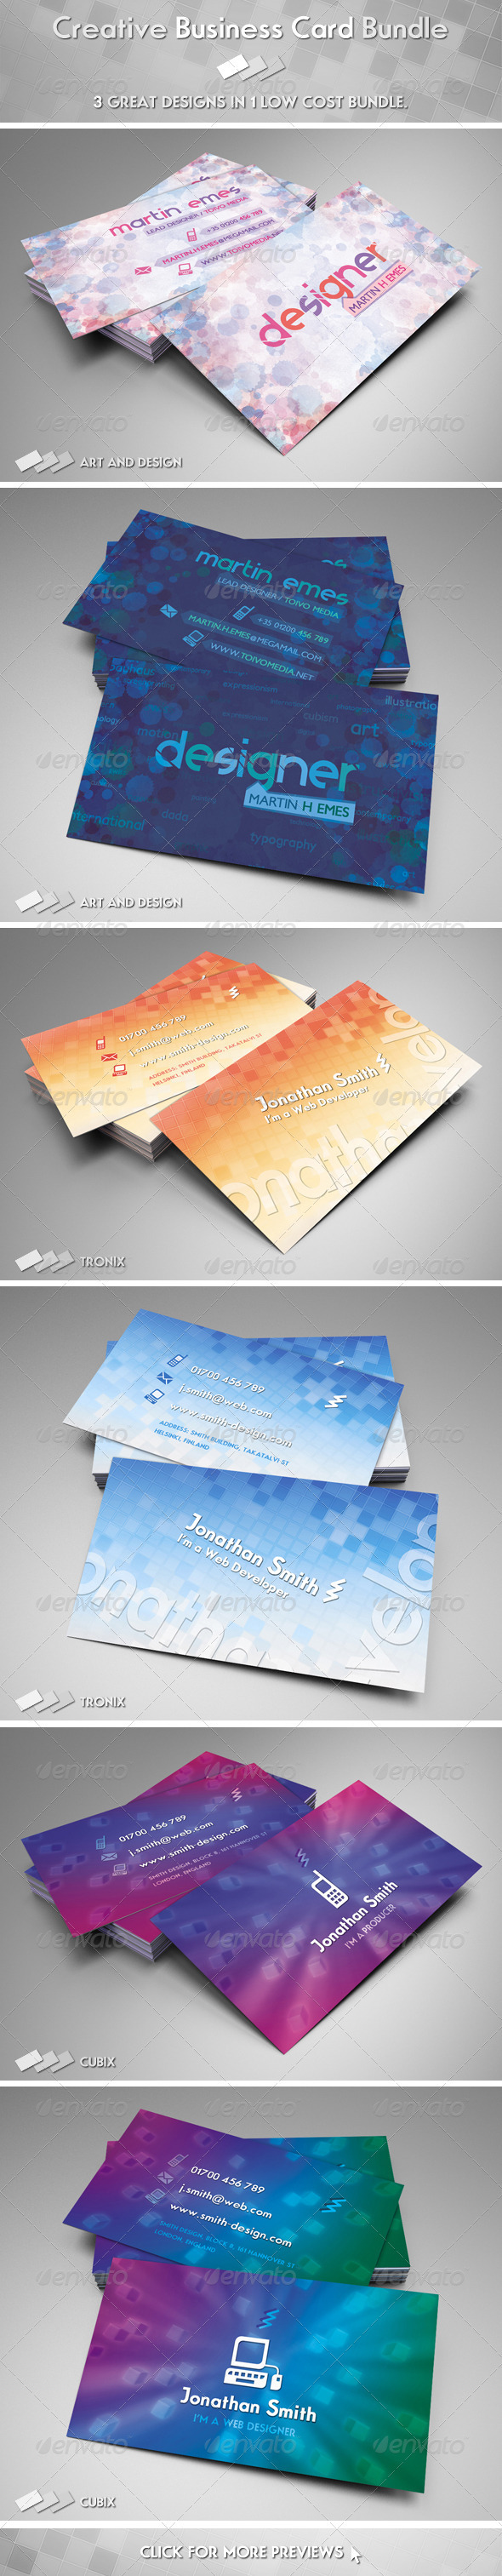 Creative Business Card Bundle - Creative Business Cards